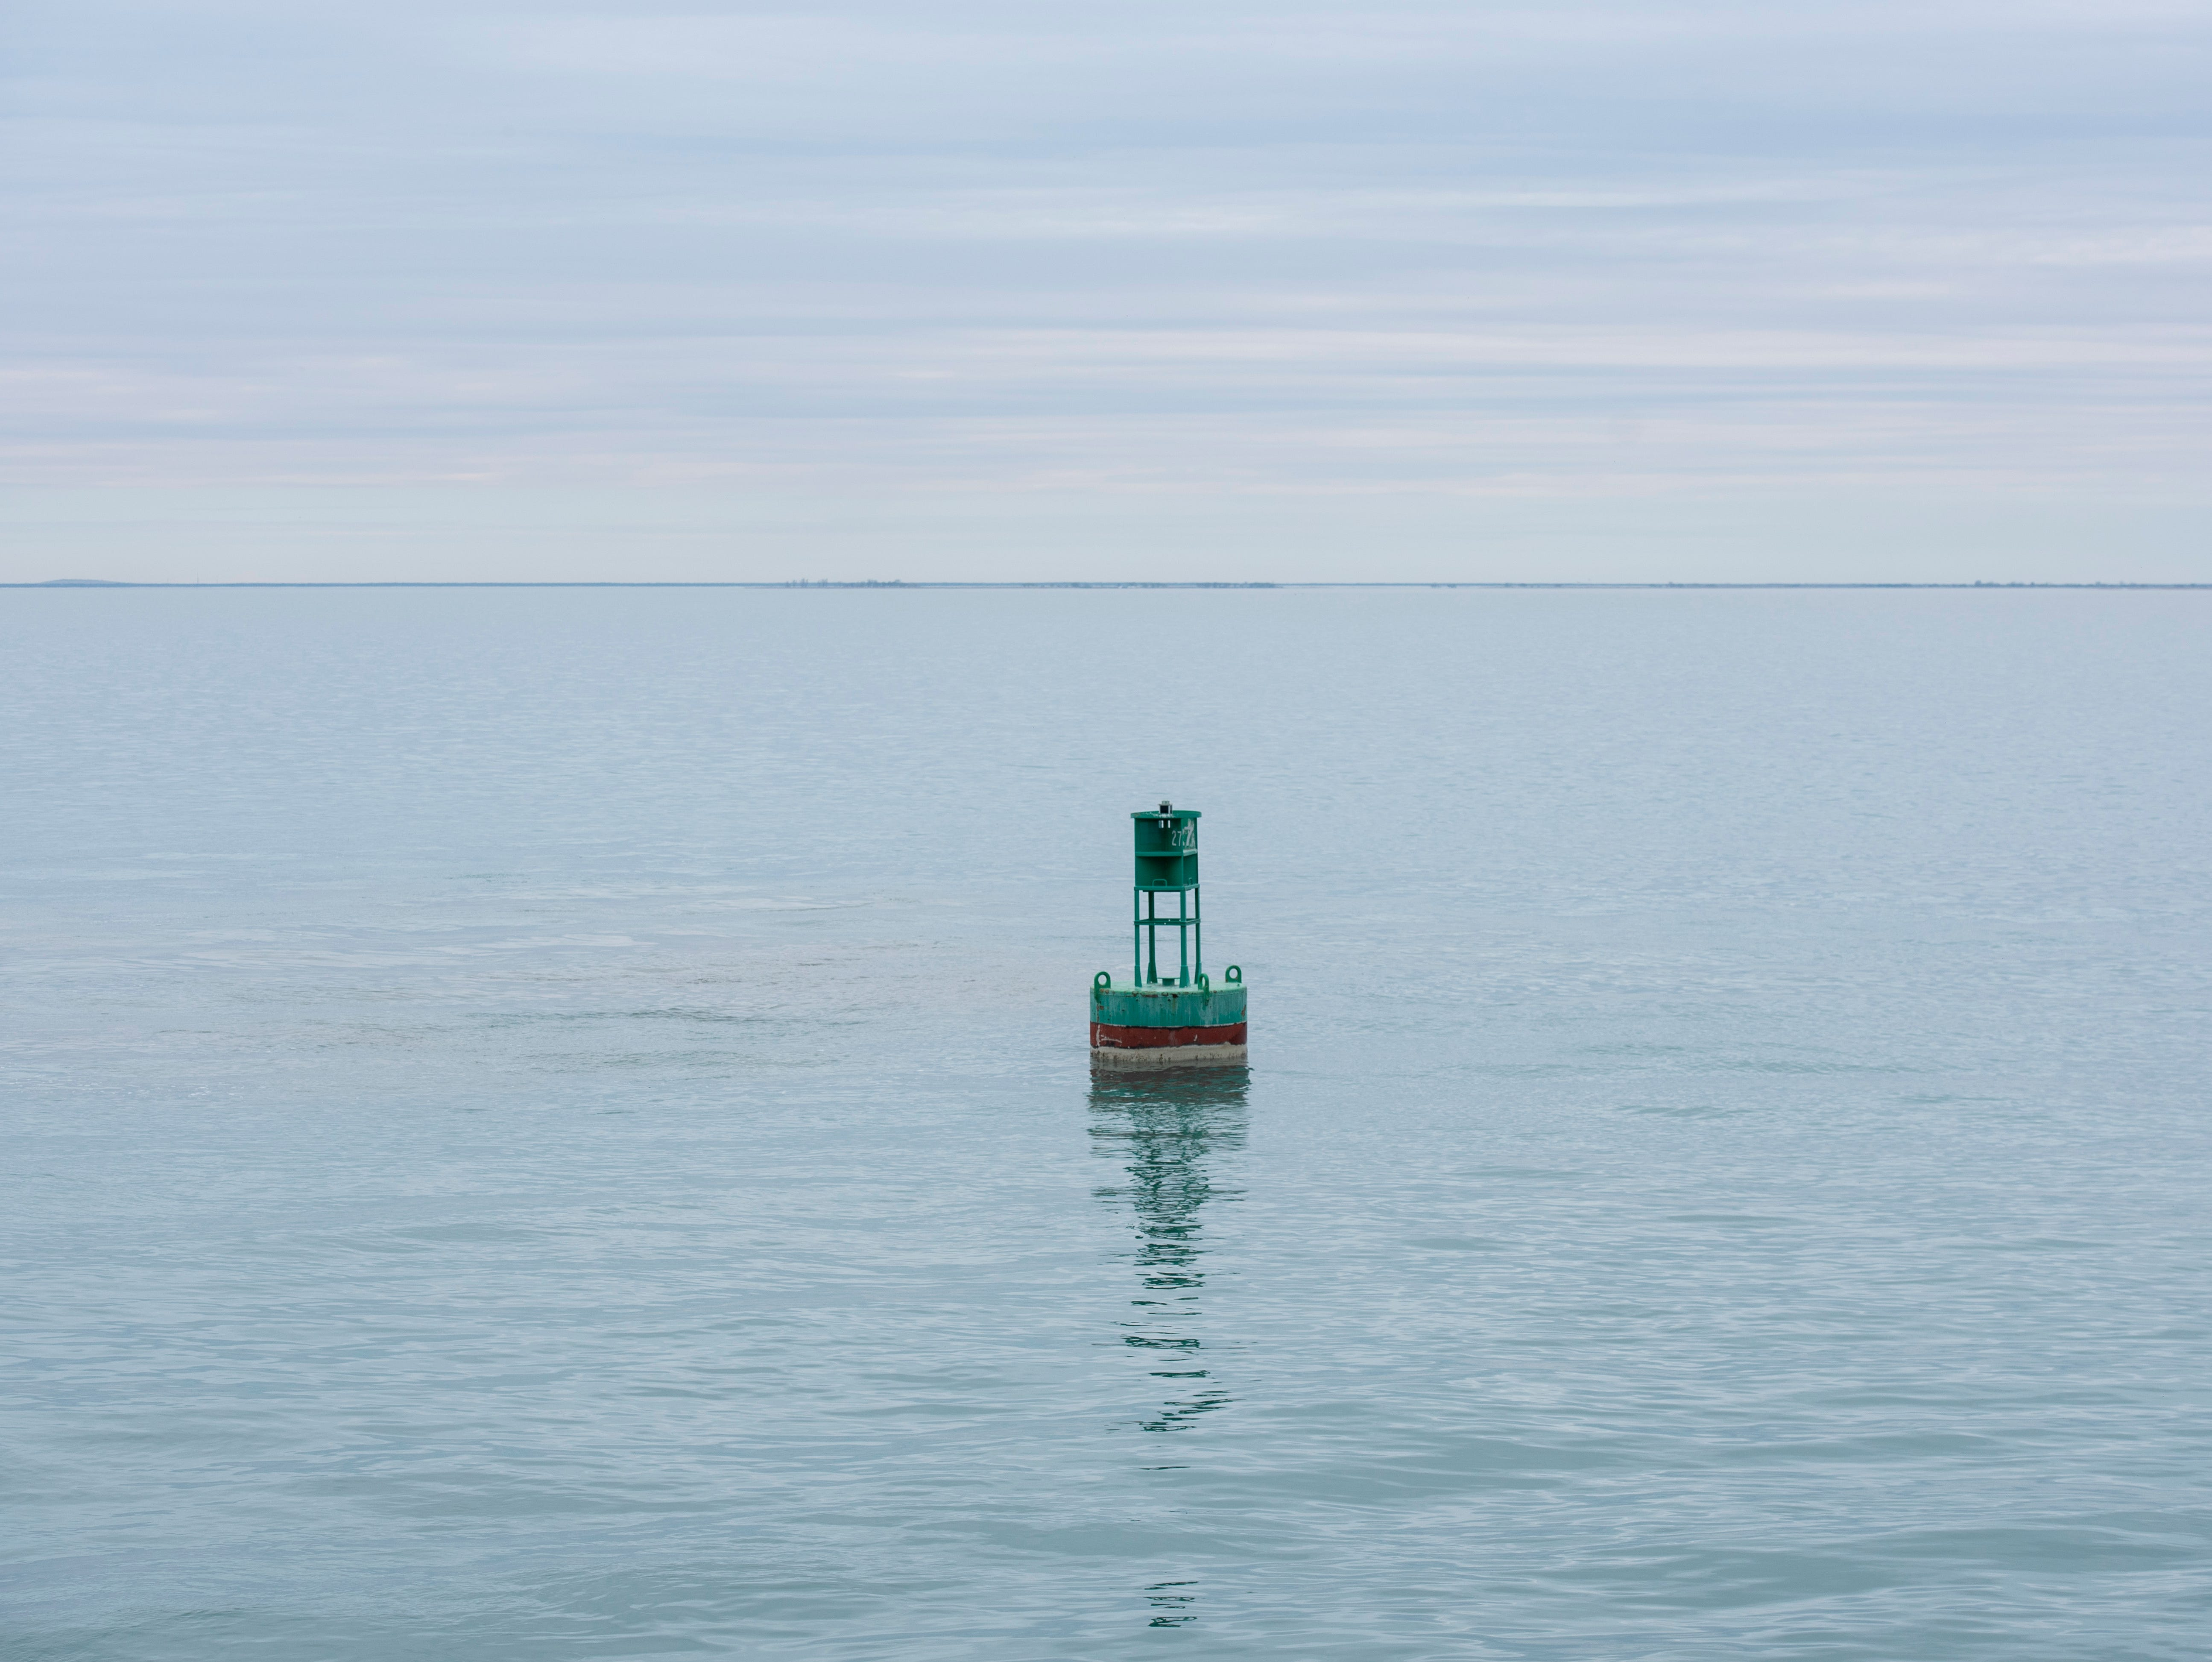 A buoy lowered into Lake St. Clair Thursday, April 25, 2019 by the crew of the USCGC Hollyhock floats on the surface of the lake.